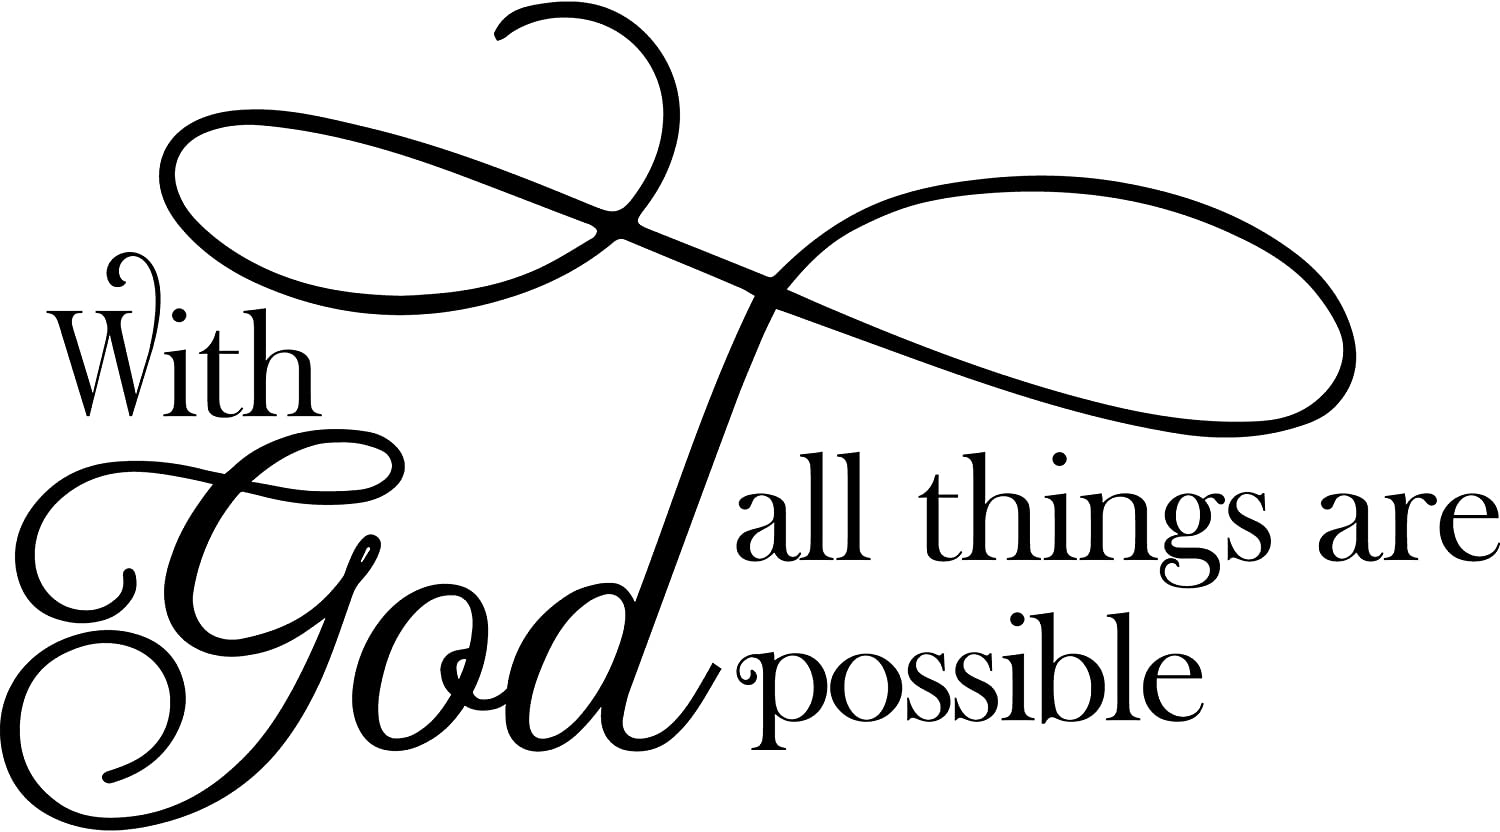 My Vinyl Story with God All Things are Possible Wall Sticker Inspirational Wall Decal Motivational Office Decor Quote Wall Art Vinyl Wall Decal Living Bed Room School Words Saying